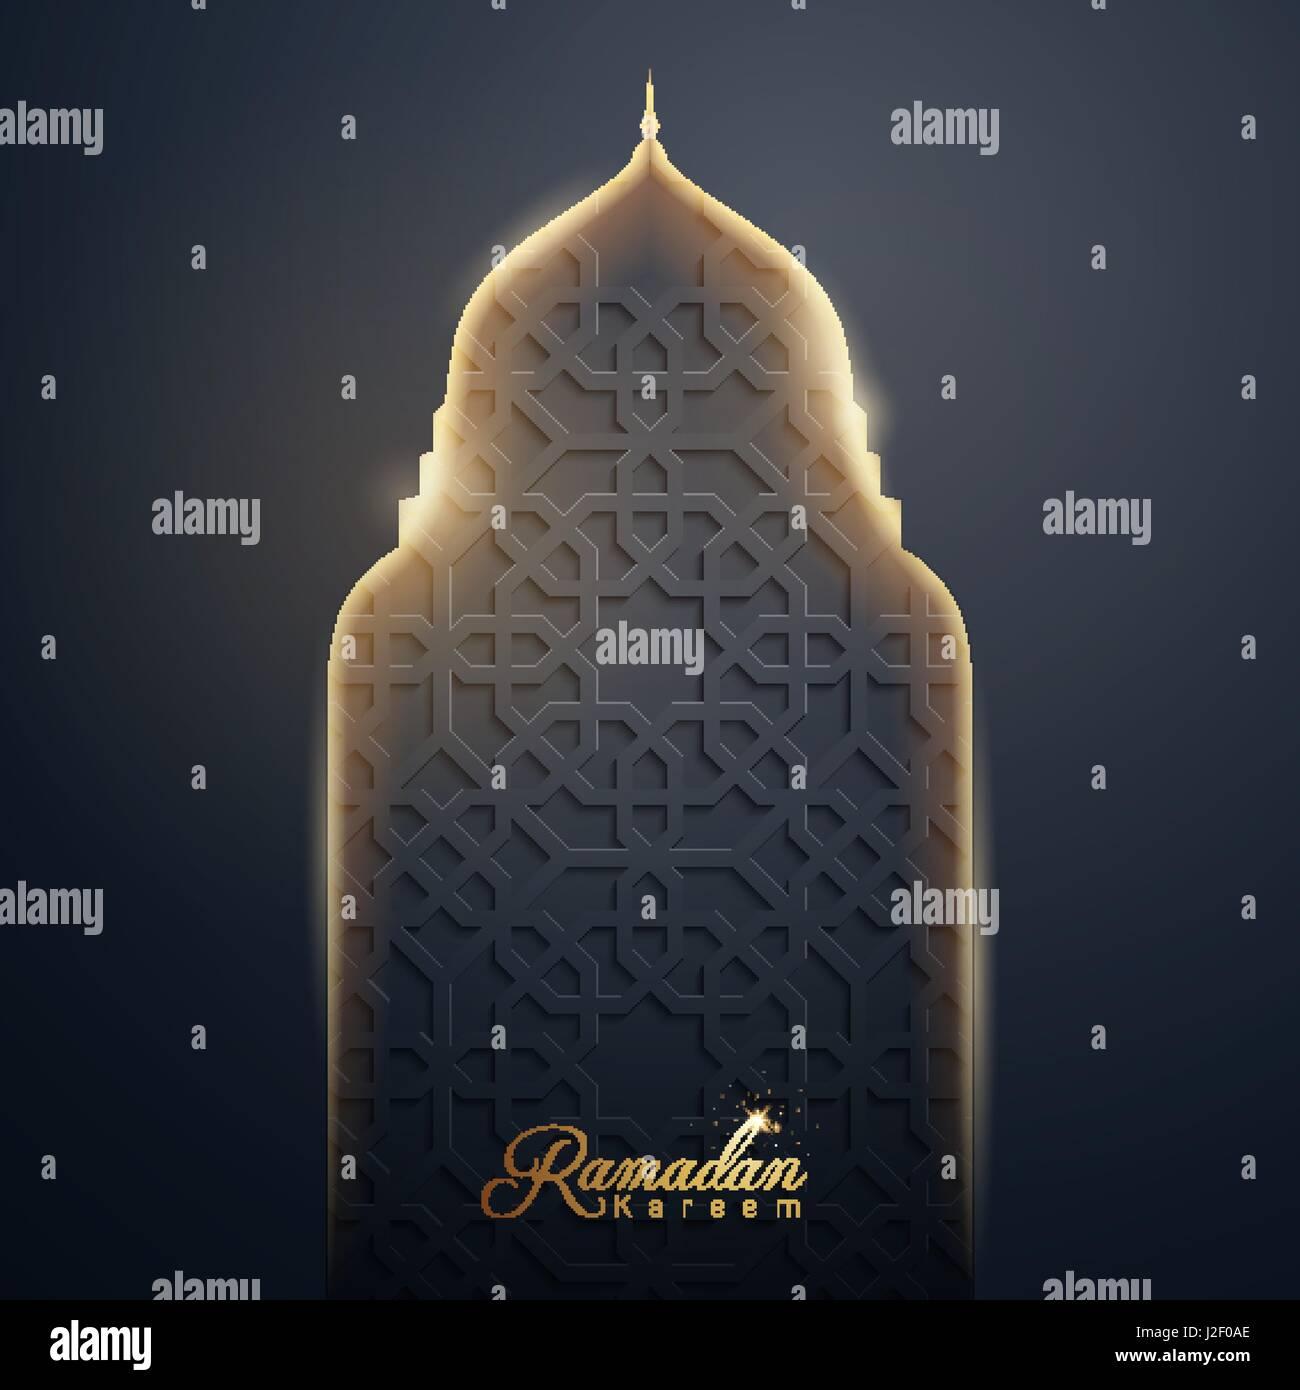 Mosque background for ramadan kareem stock photography image - Ramadan Kareem Islamic Vector Design Glow Mosque Dome With Arabic Pattern For Greeting Background